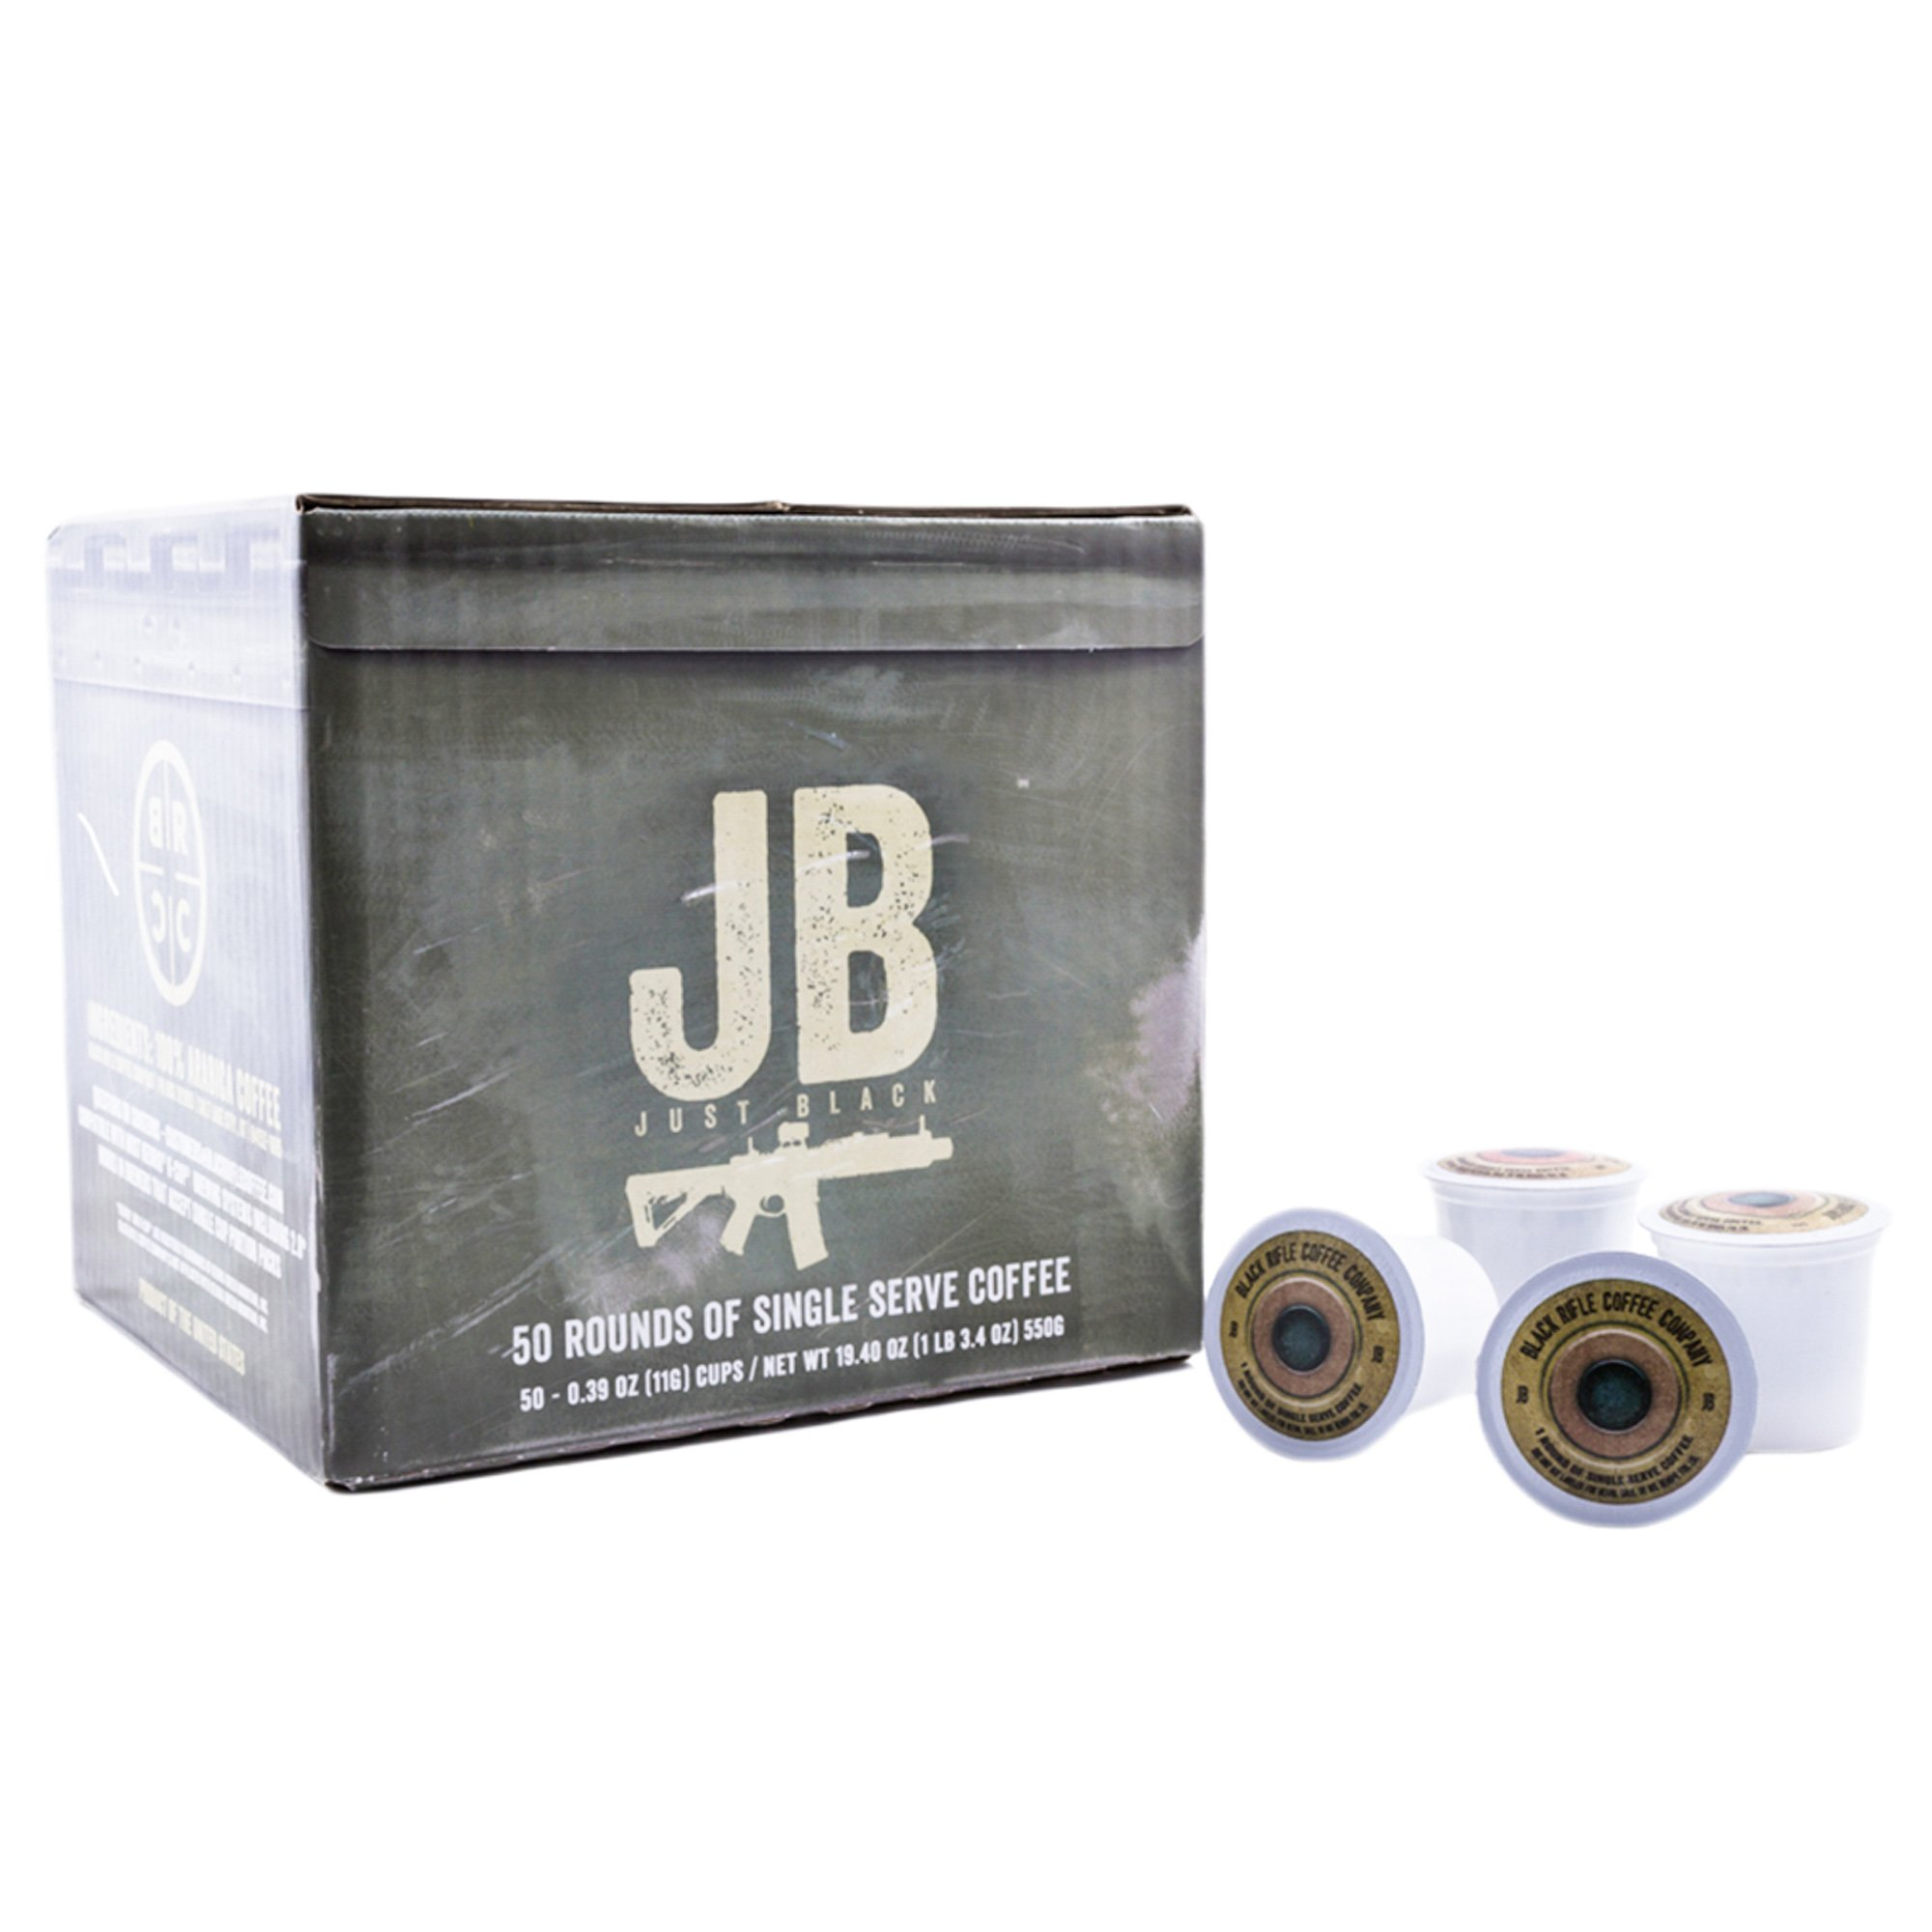 Black Rifle Coffee Company JB Just Black Coffee Rounds for Single Serve Brewing Machines (50 Count) dark Roast Coffee Pods Cups